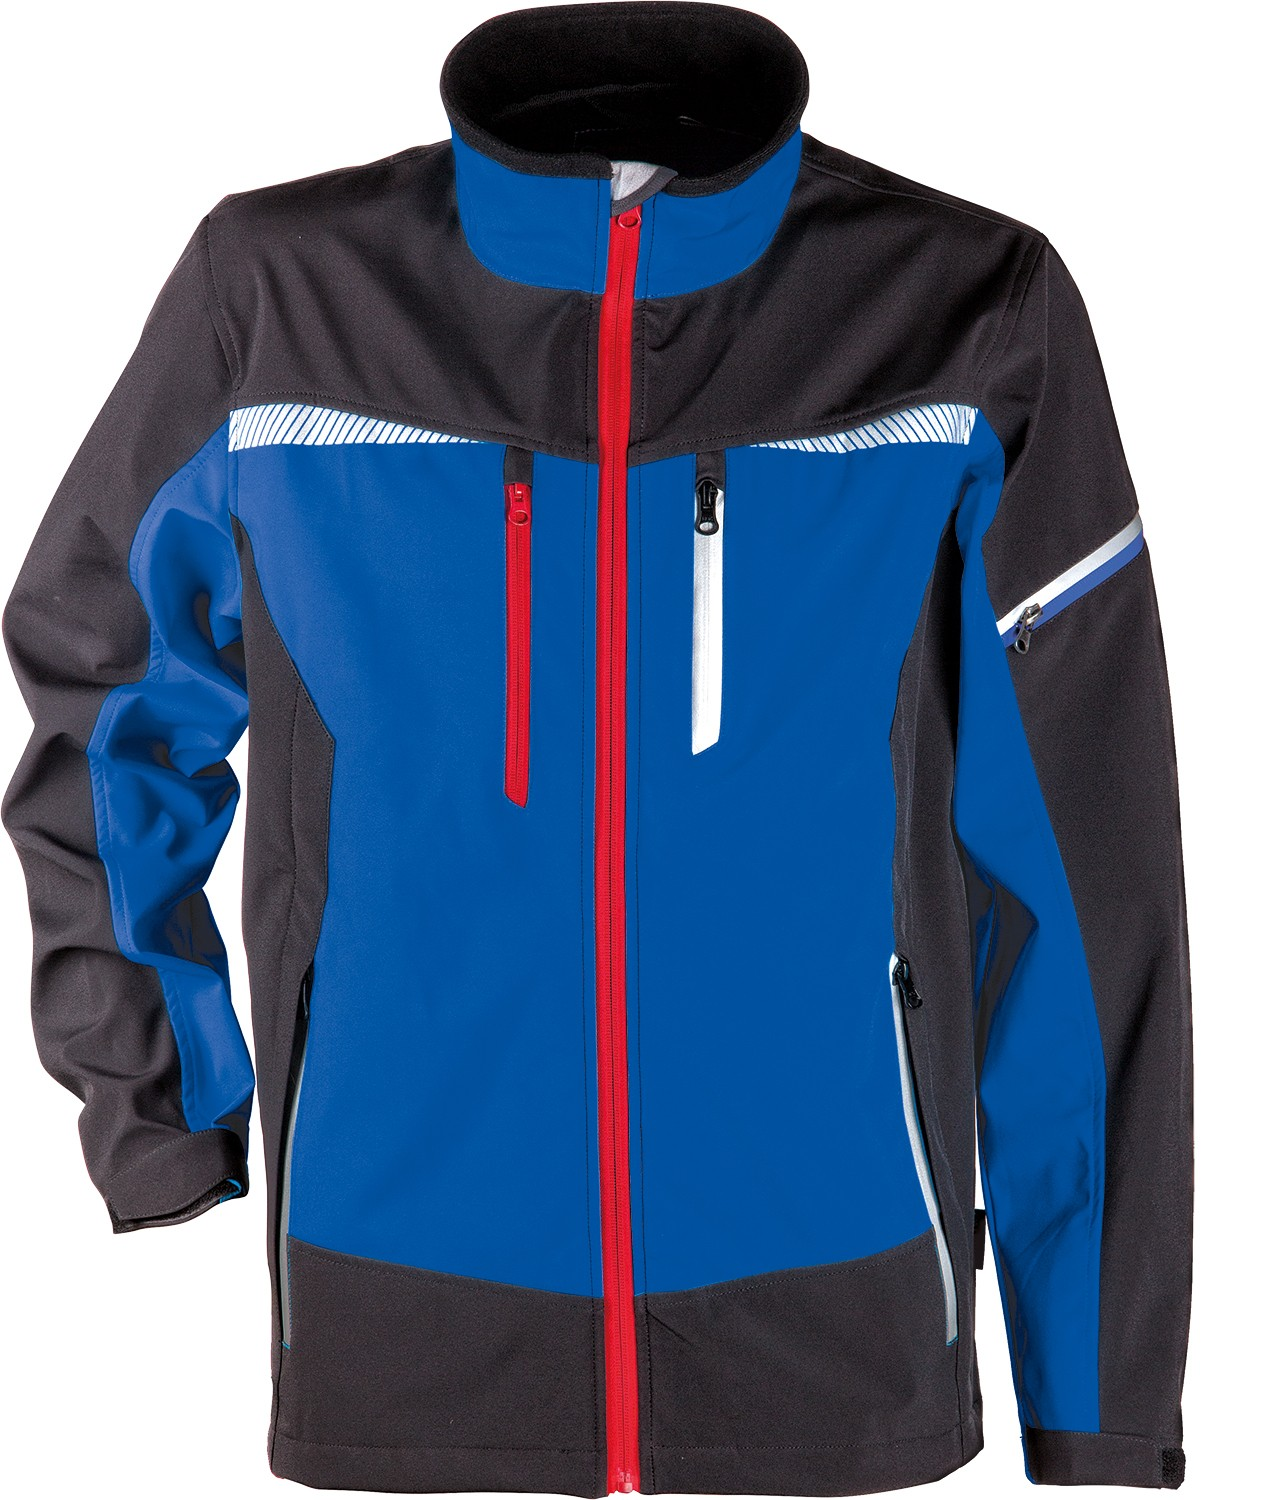 prisma-jacket-blue-softshell